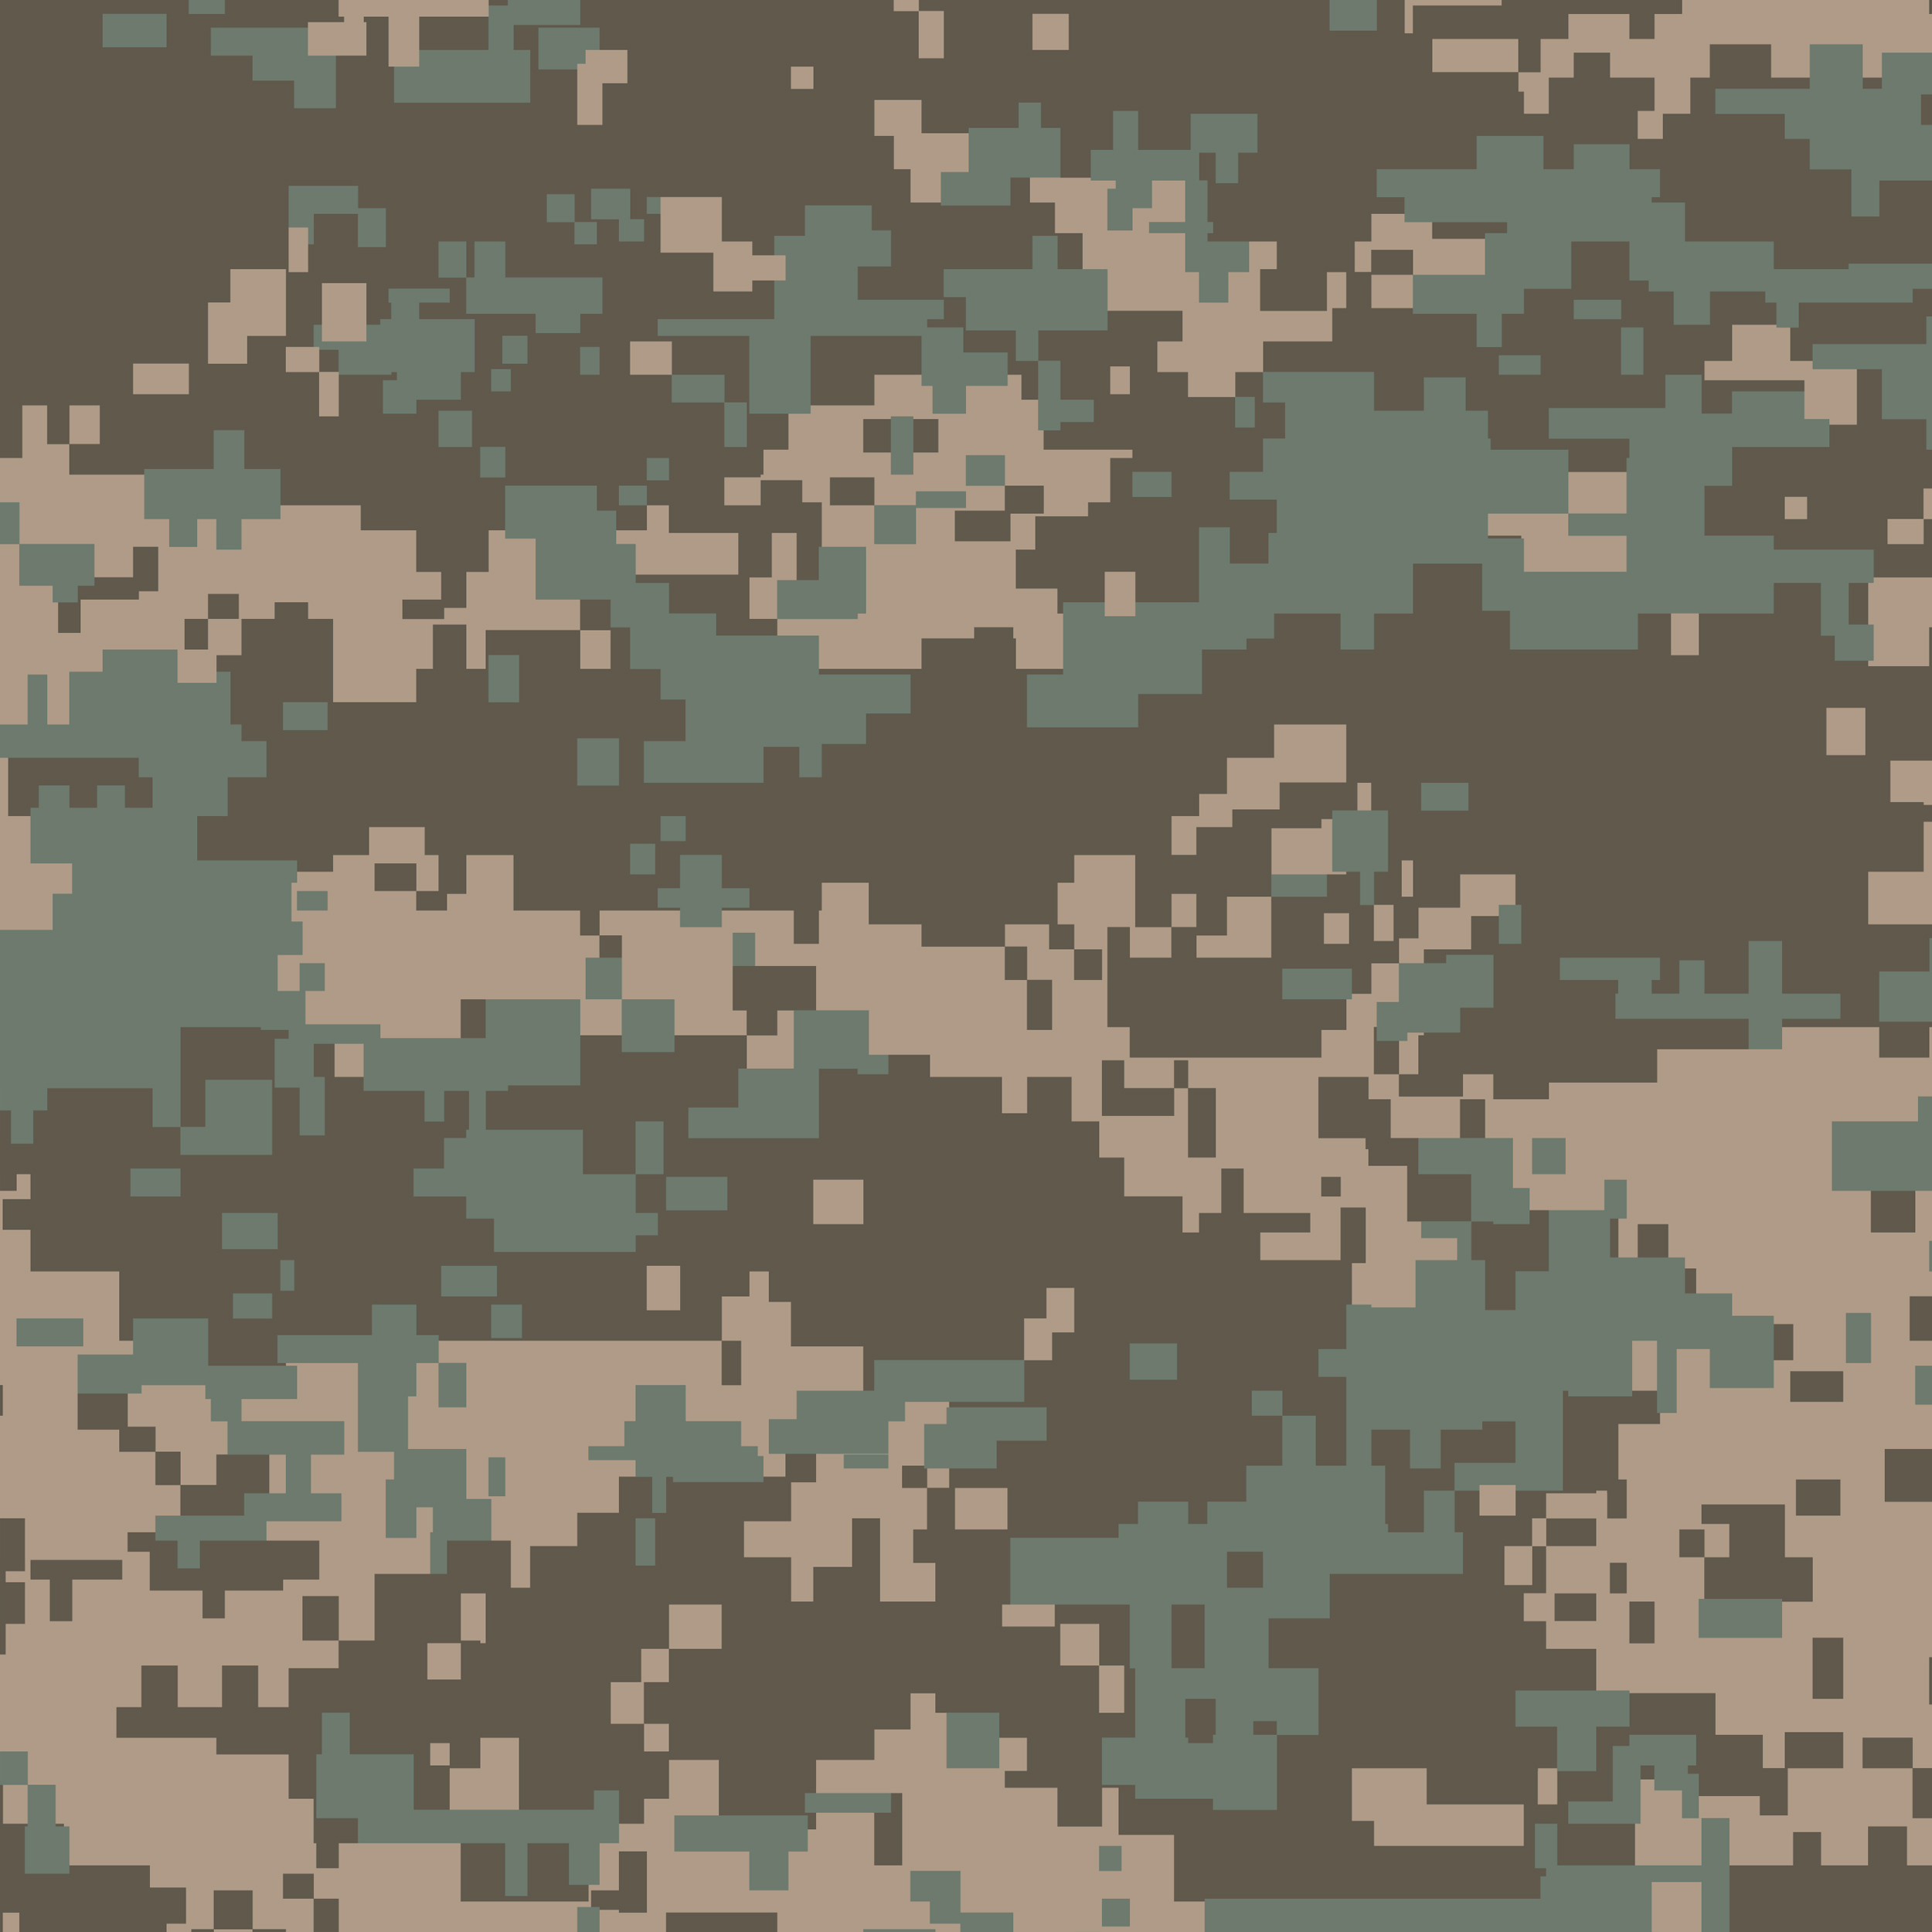 1000+ images about CAMO on Pinterest.